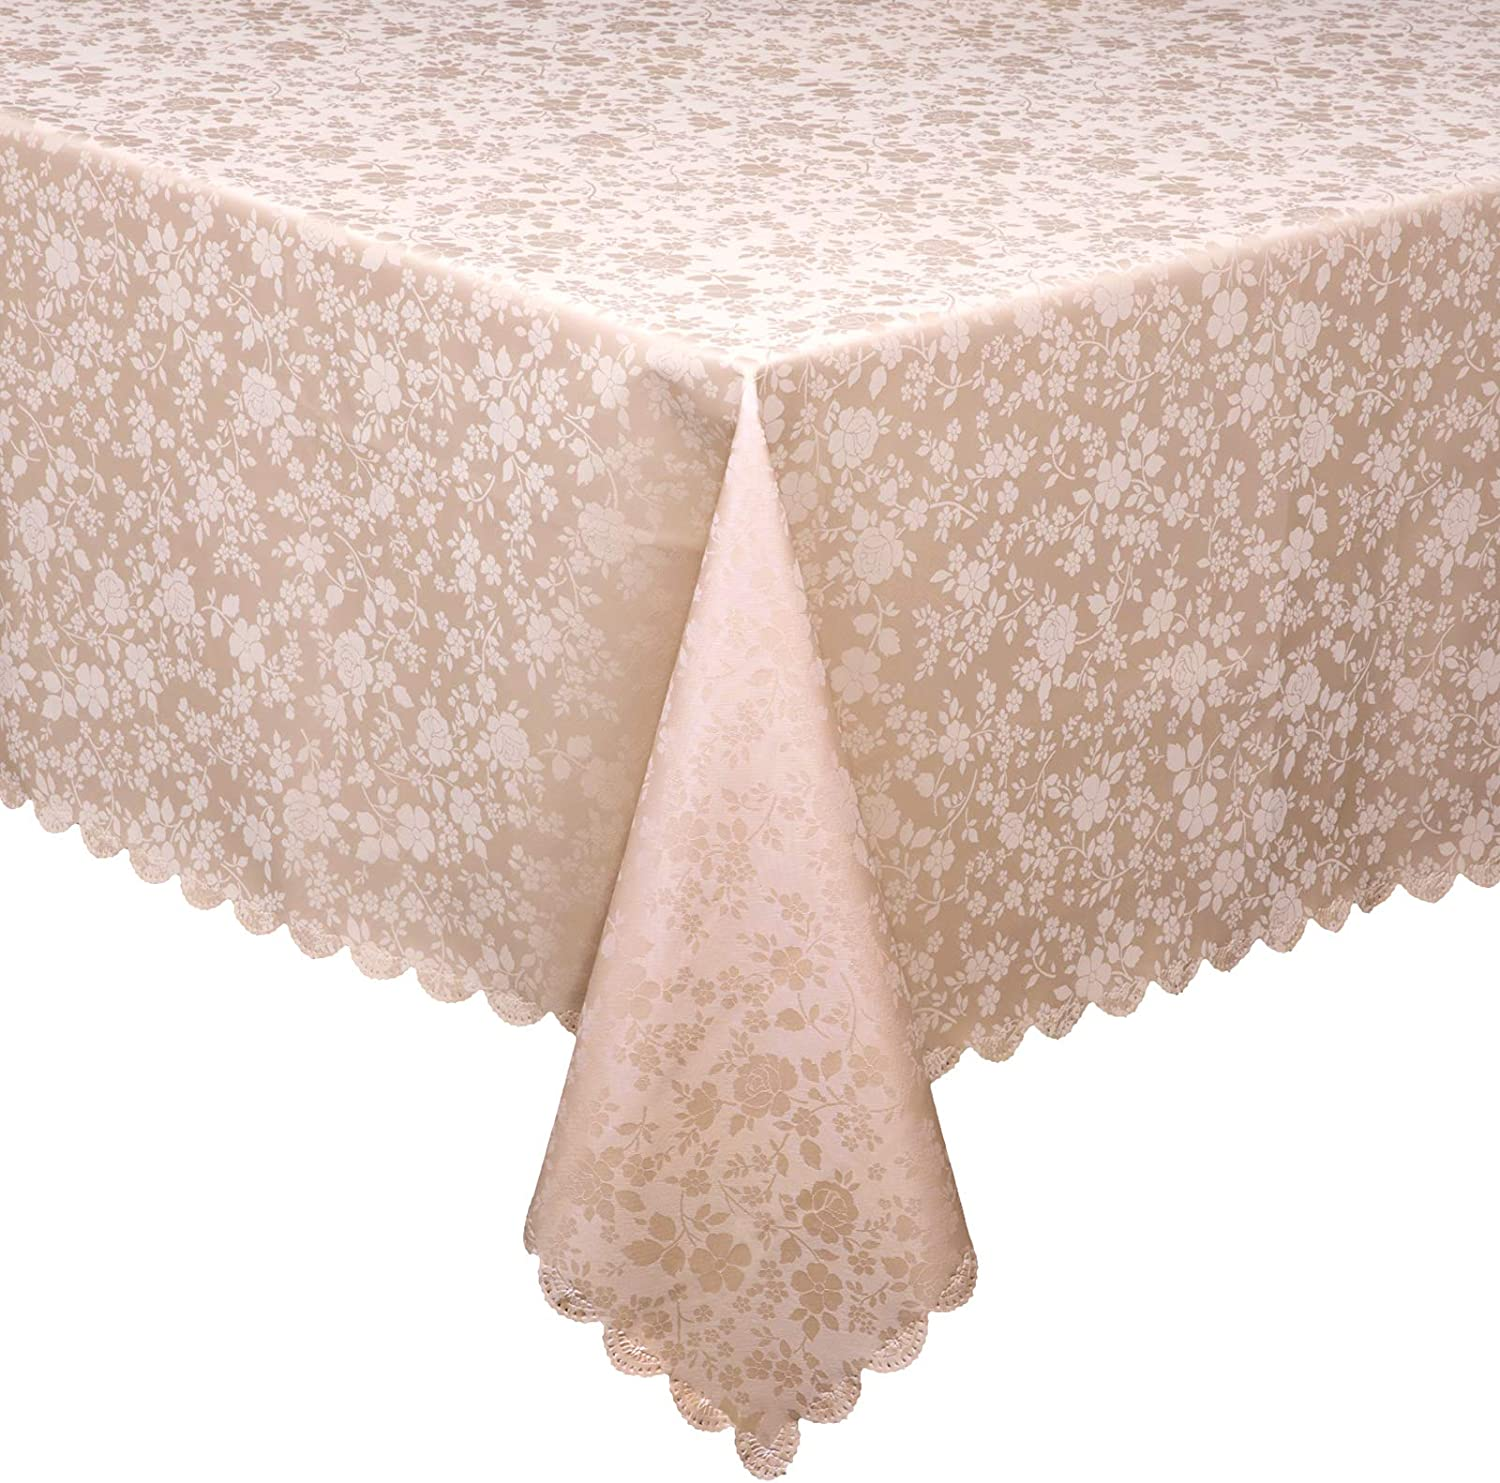 MONFINO Retangular Tablecloth,Waterproof Vinyl Table Cloth,Easy Care Dining Table Cover for Indoor and Outdoor Use (60''x84'', Beige)